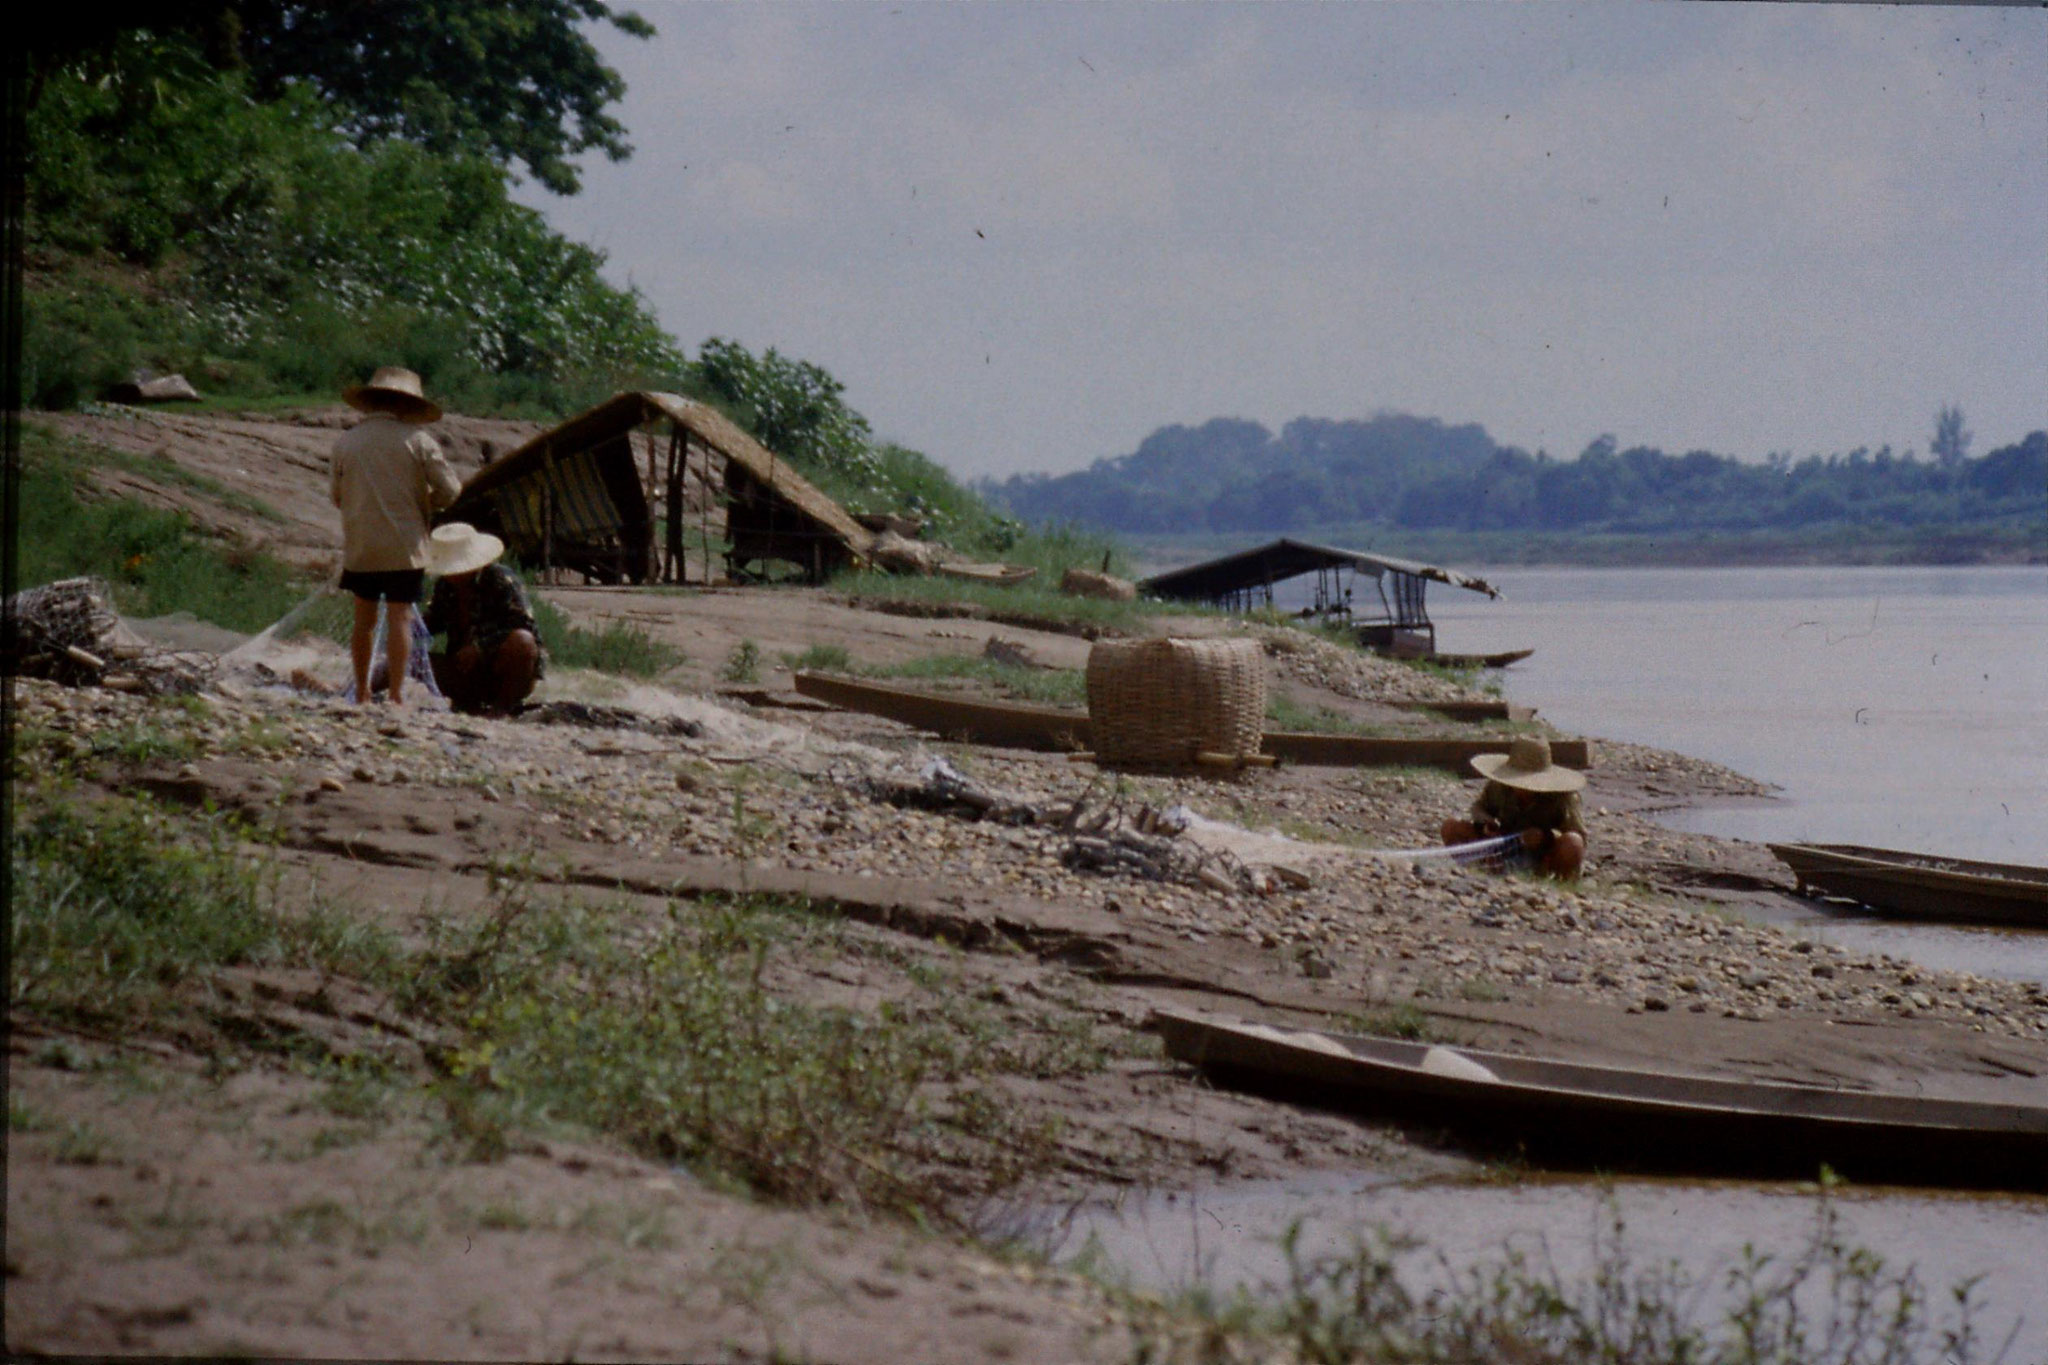 30/5/1990: 25: east of Nong Khai, Mekong river